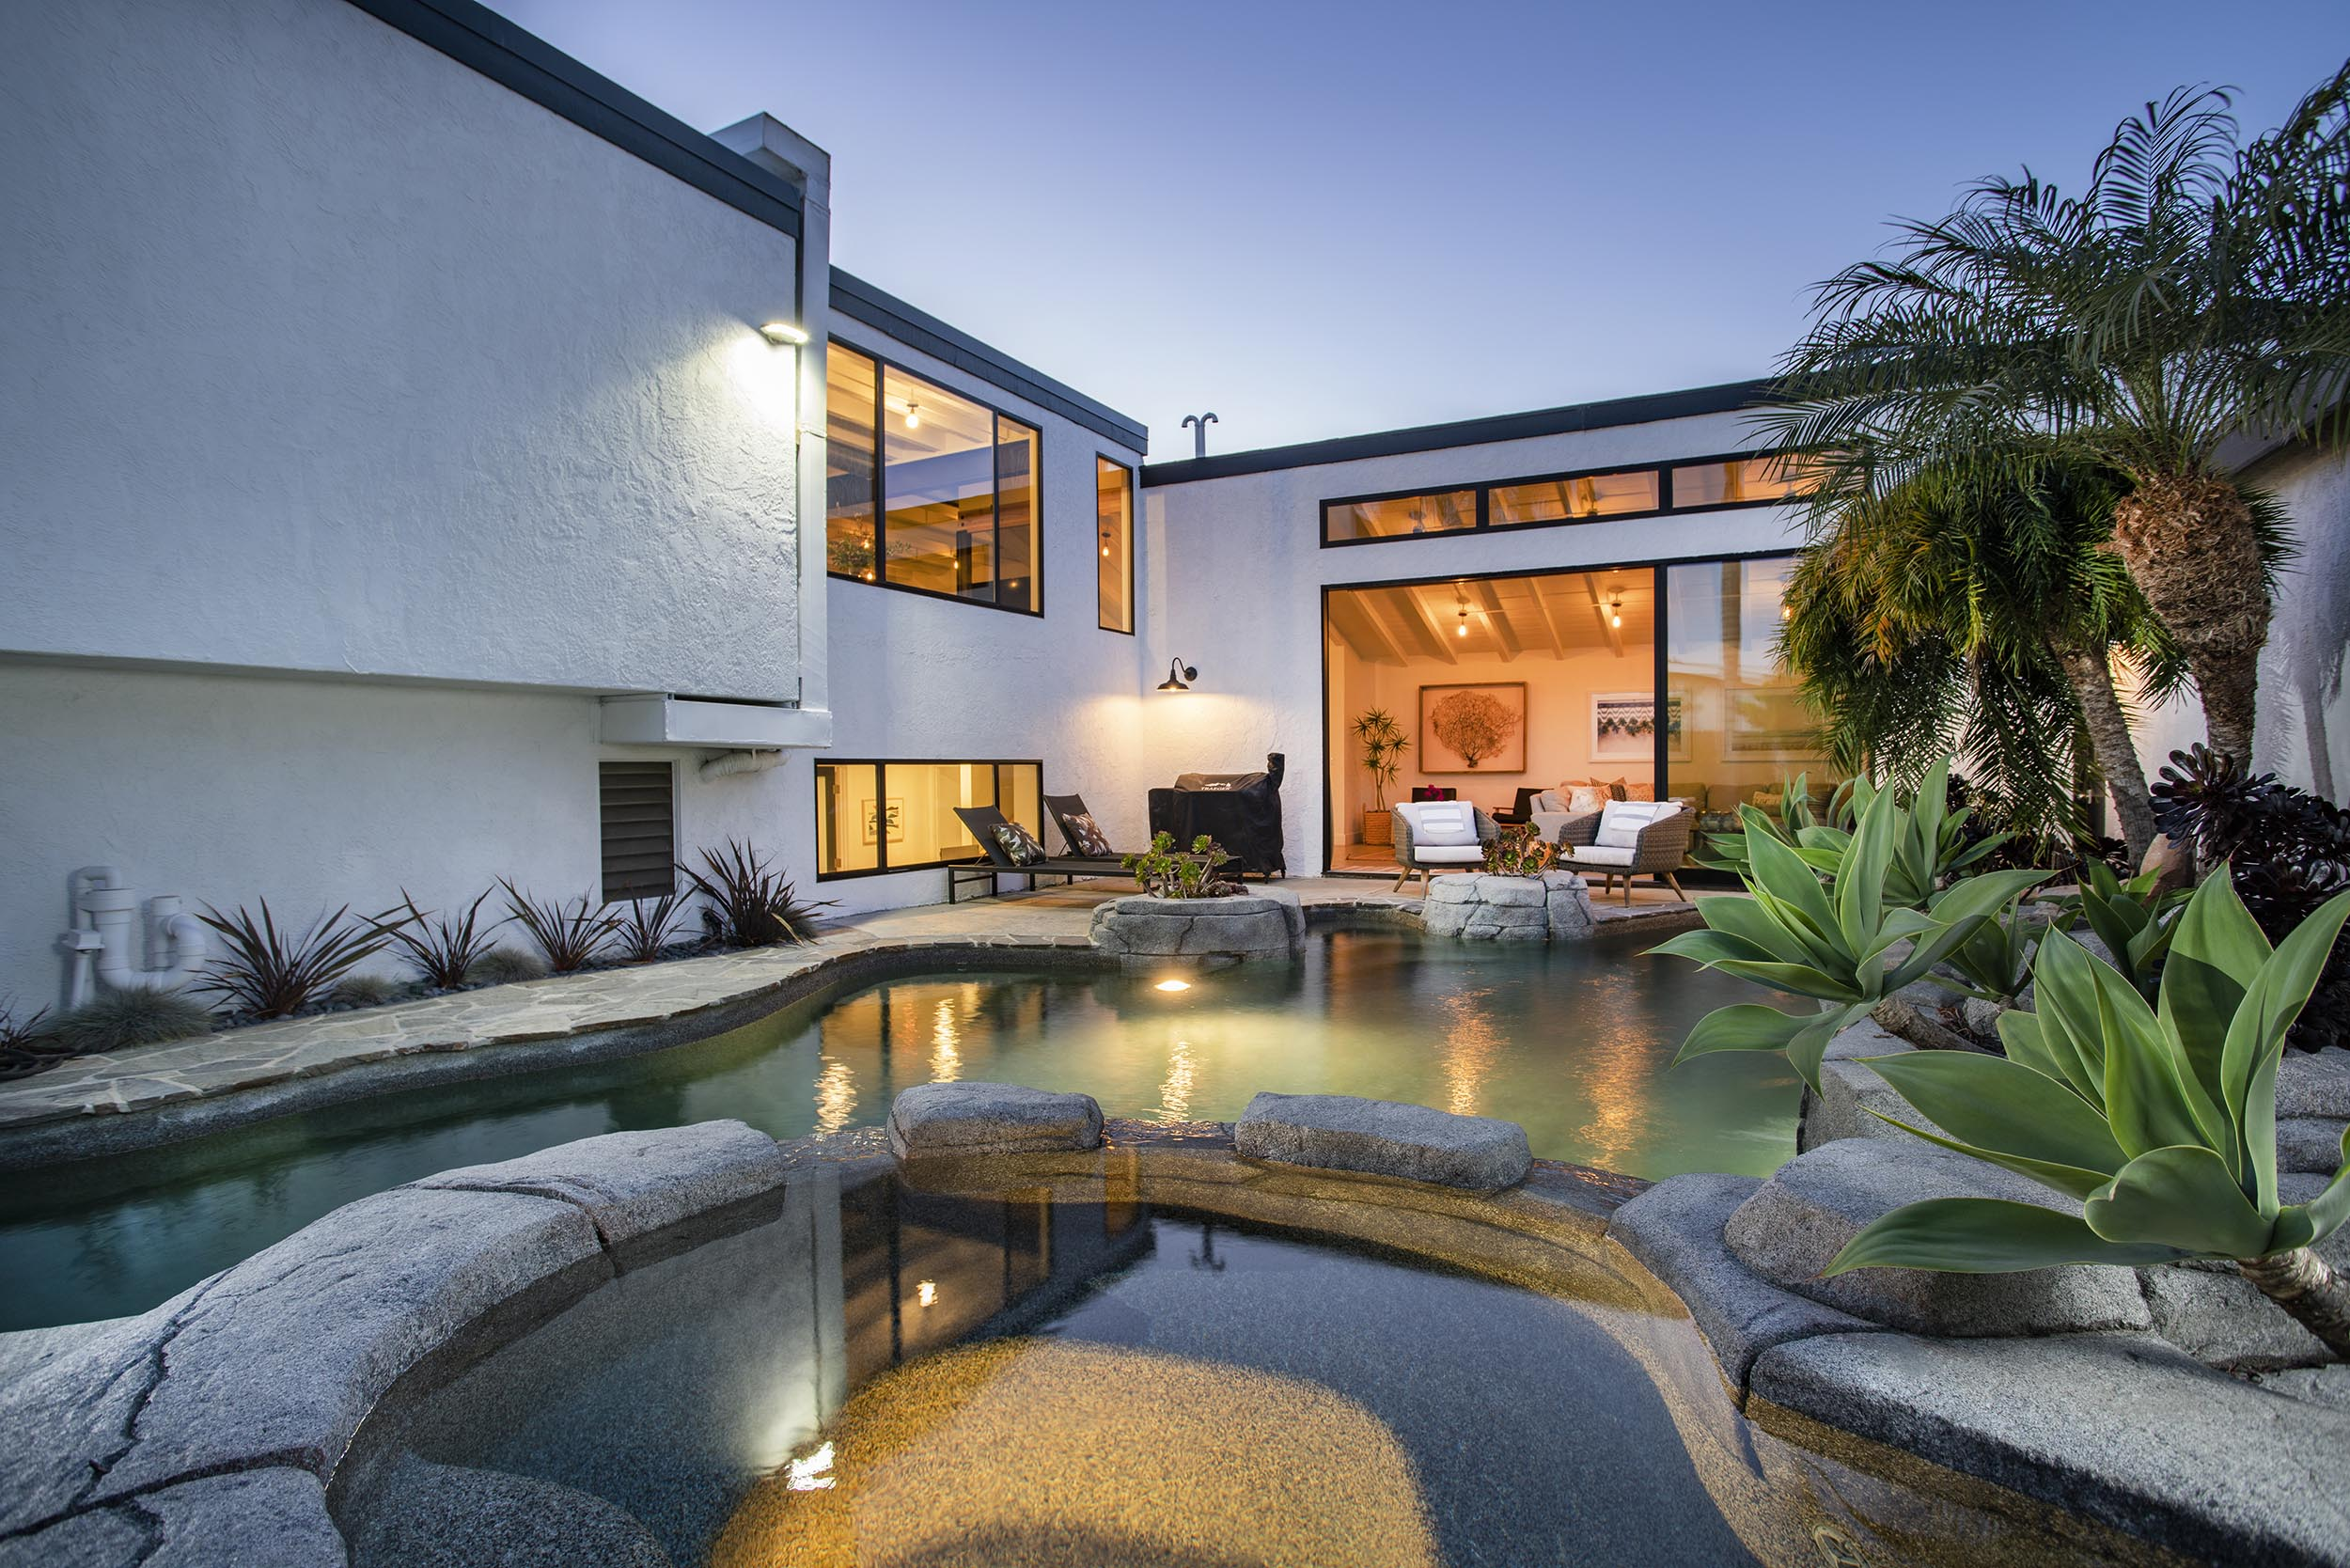 JUST SOLD  OVER ASKING PRICE |   $2,806,988 | 2402 CALLE MONTE CARLO | SOUTHWEST SAN CLEMENTE